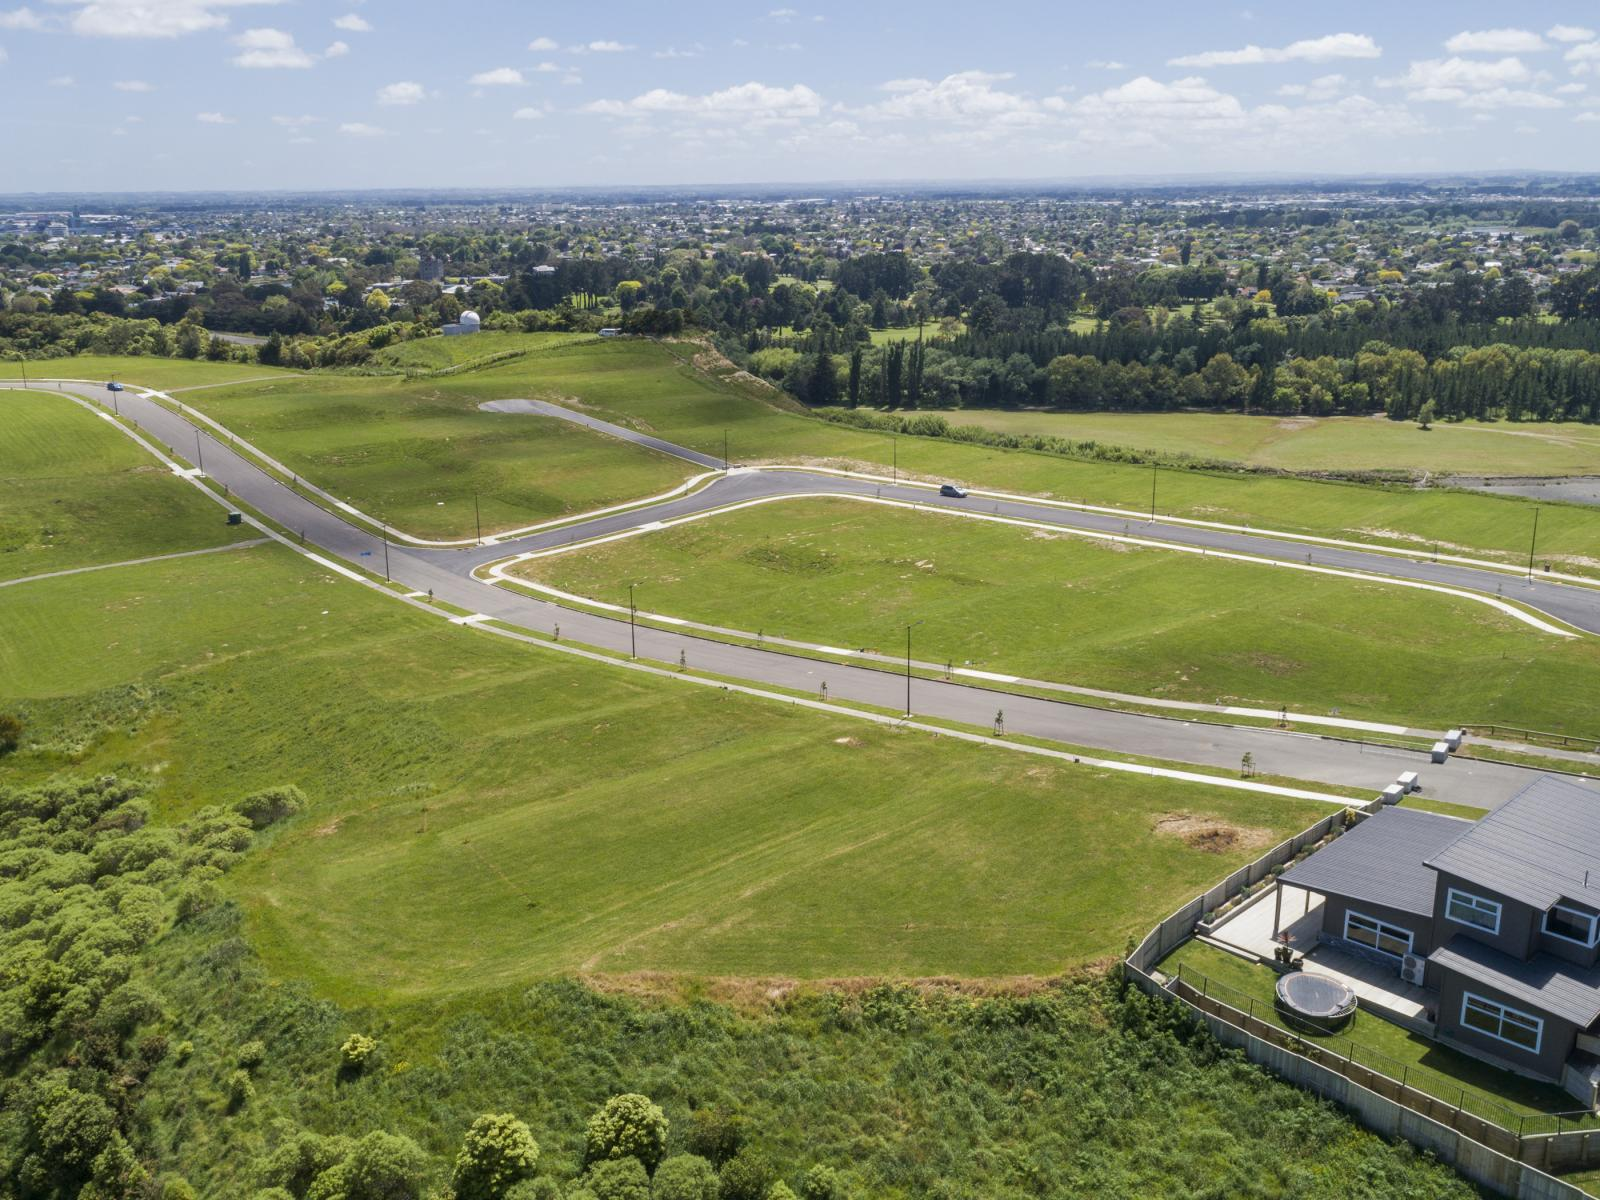 Lot 34 Vaucluse Heights, Palmerston North